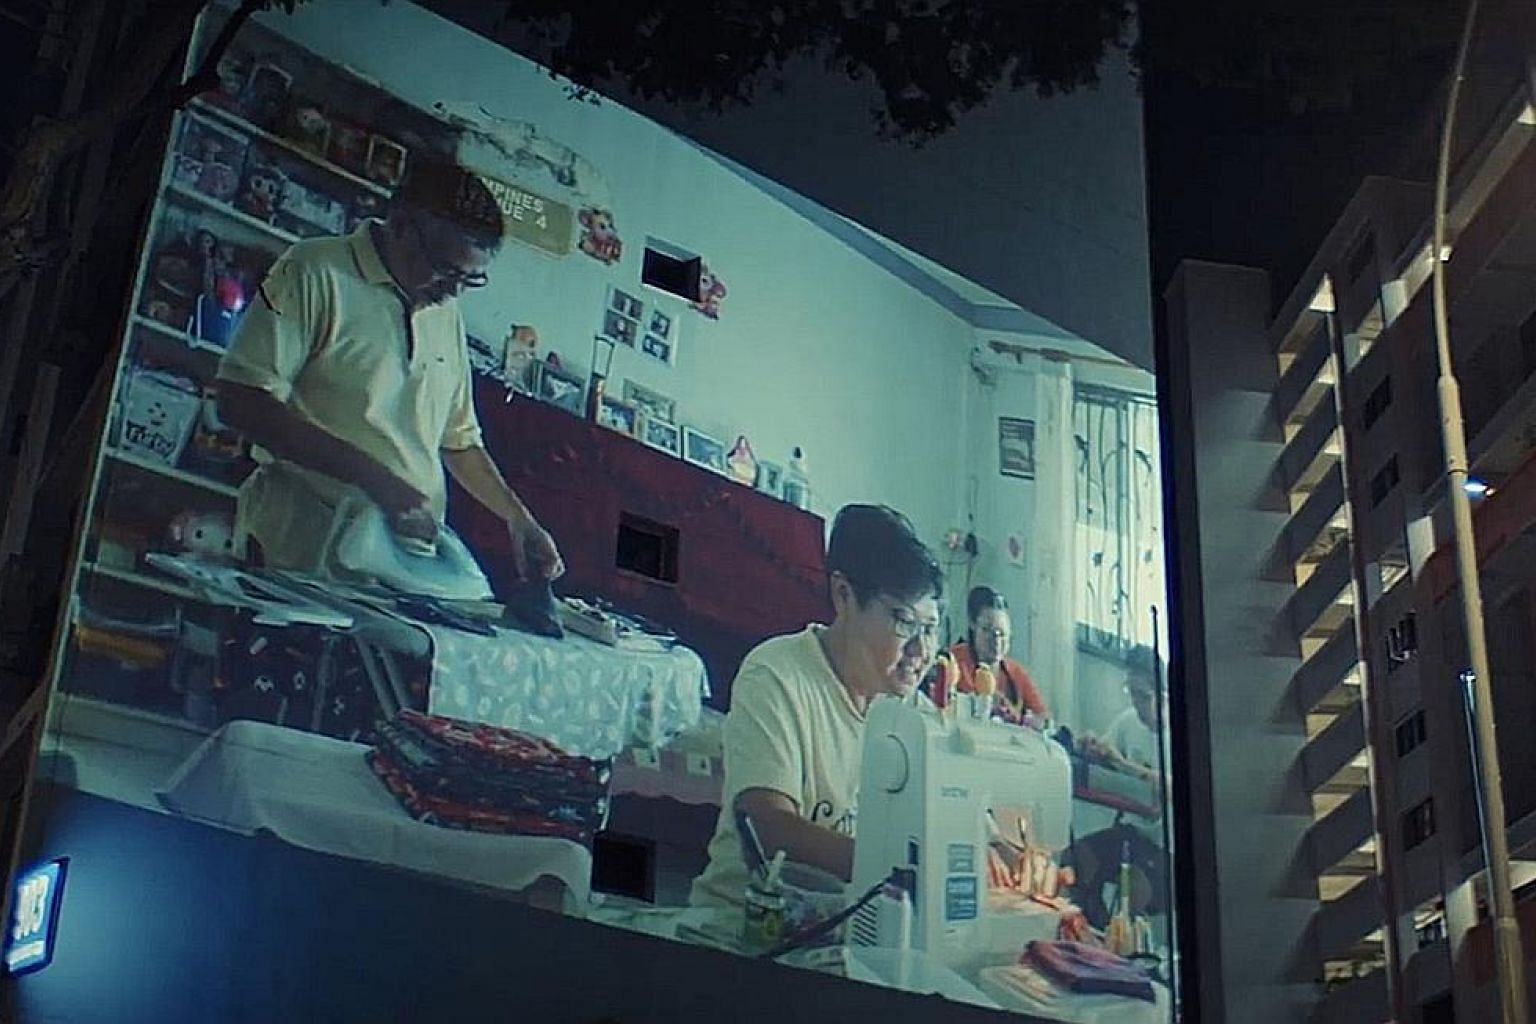 The video was filmed on the virtually empty streets of Singapore during the Covid-19 circuit breaker period and shows local landmarks such as the National Gallery Singapore and familiar locations like schools.